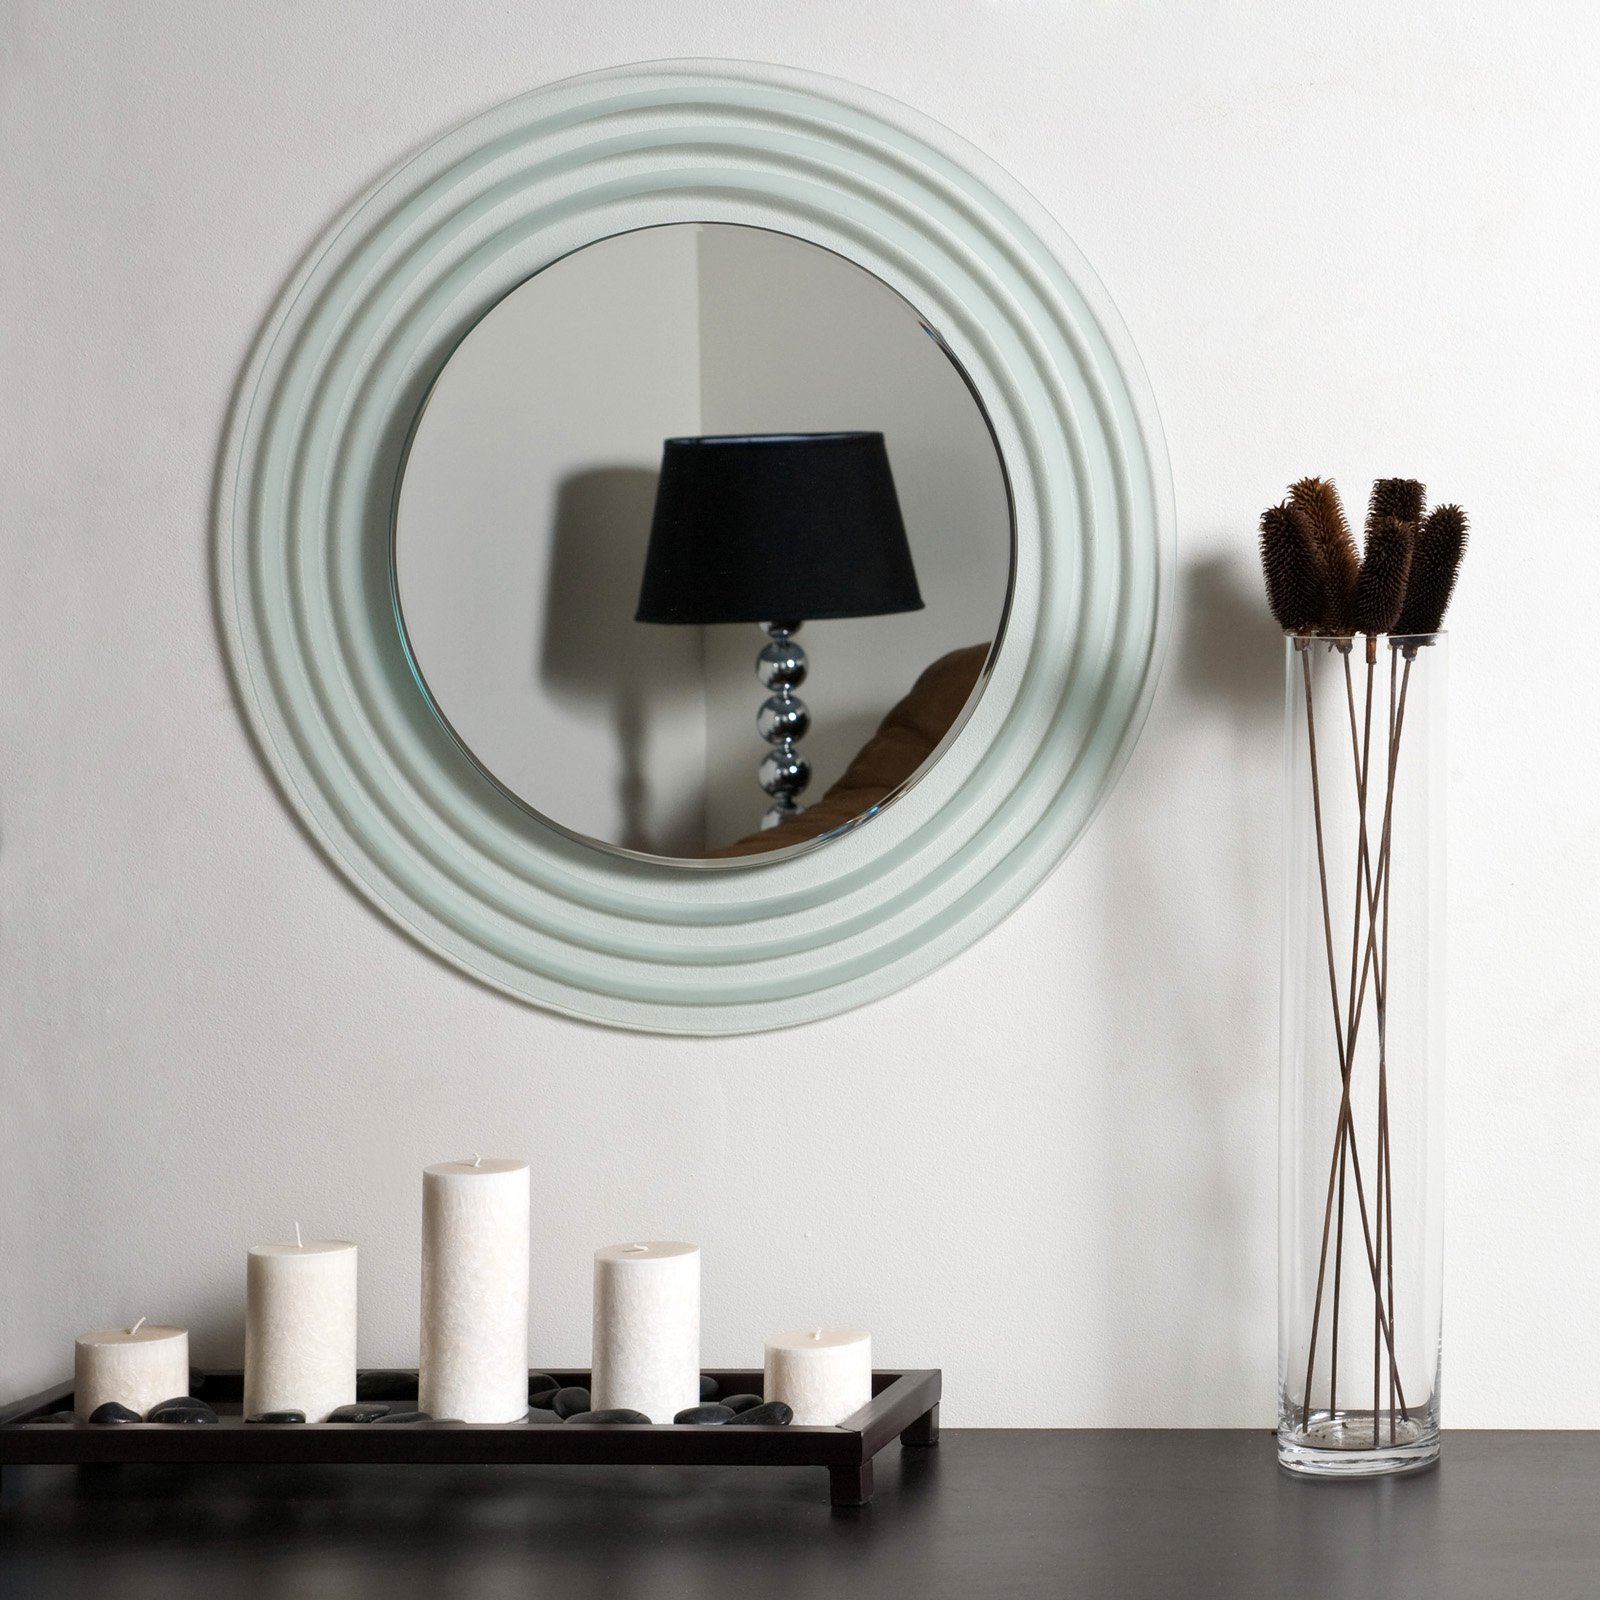 Décor Wonderland Isabella Modern Frameless Bathroom Mirror 23.5 diam. in. by Decor Wonderland of US